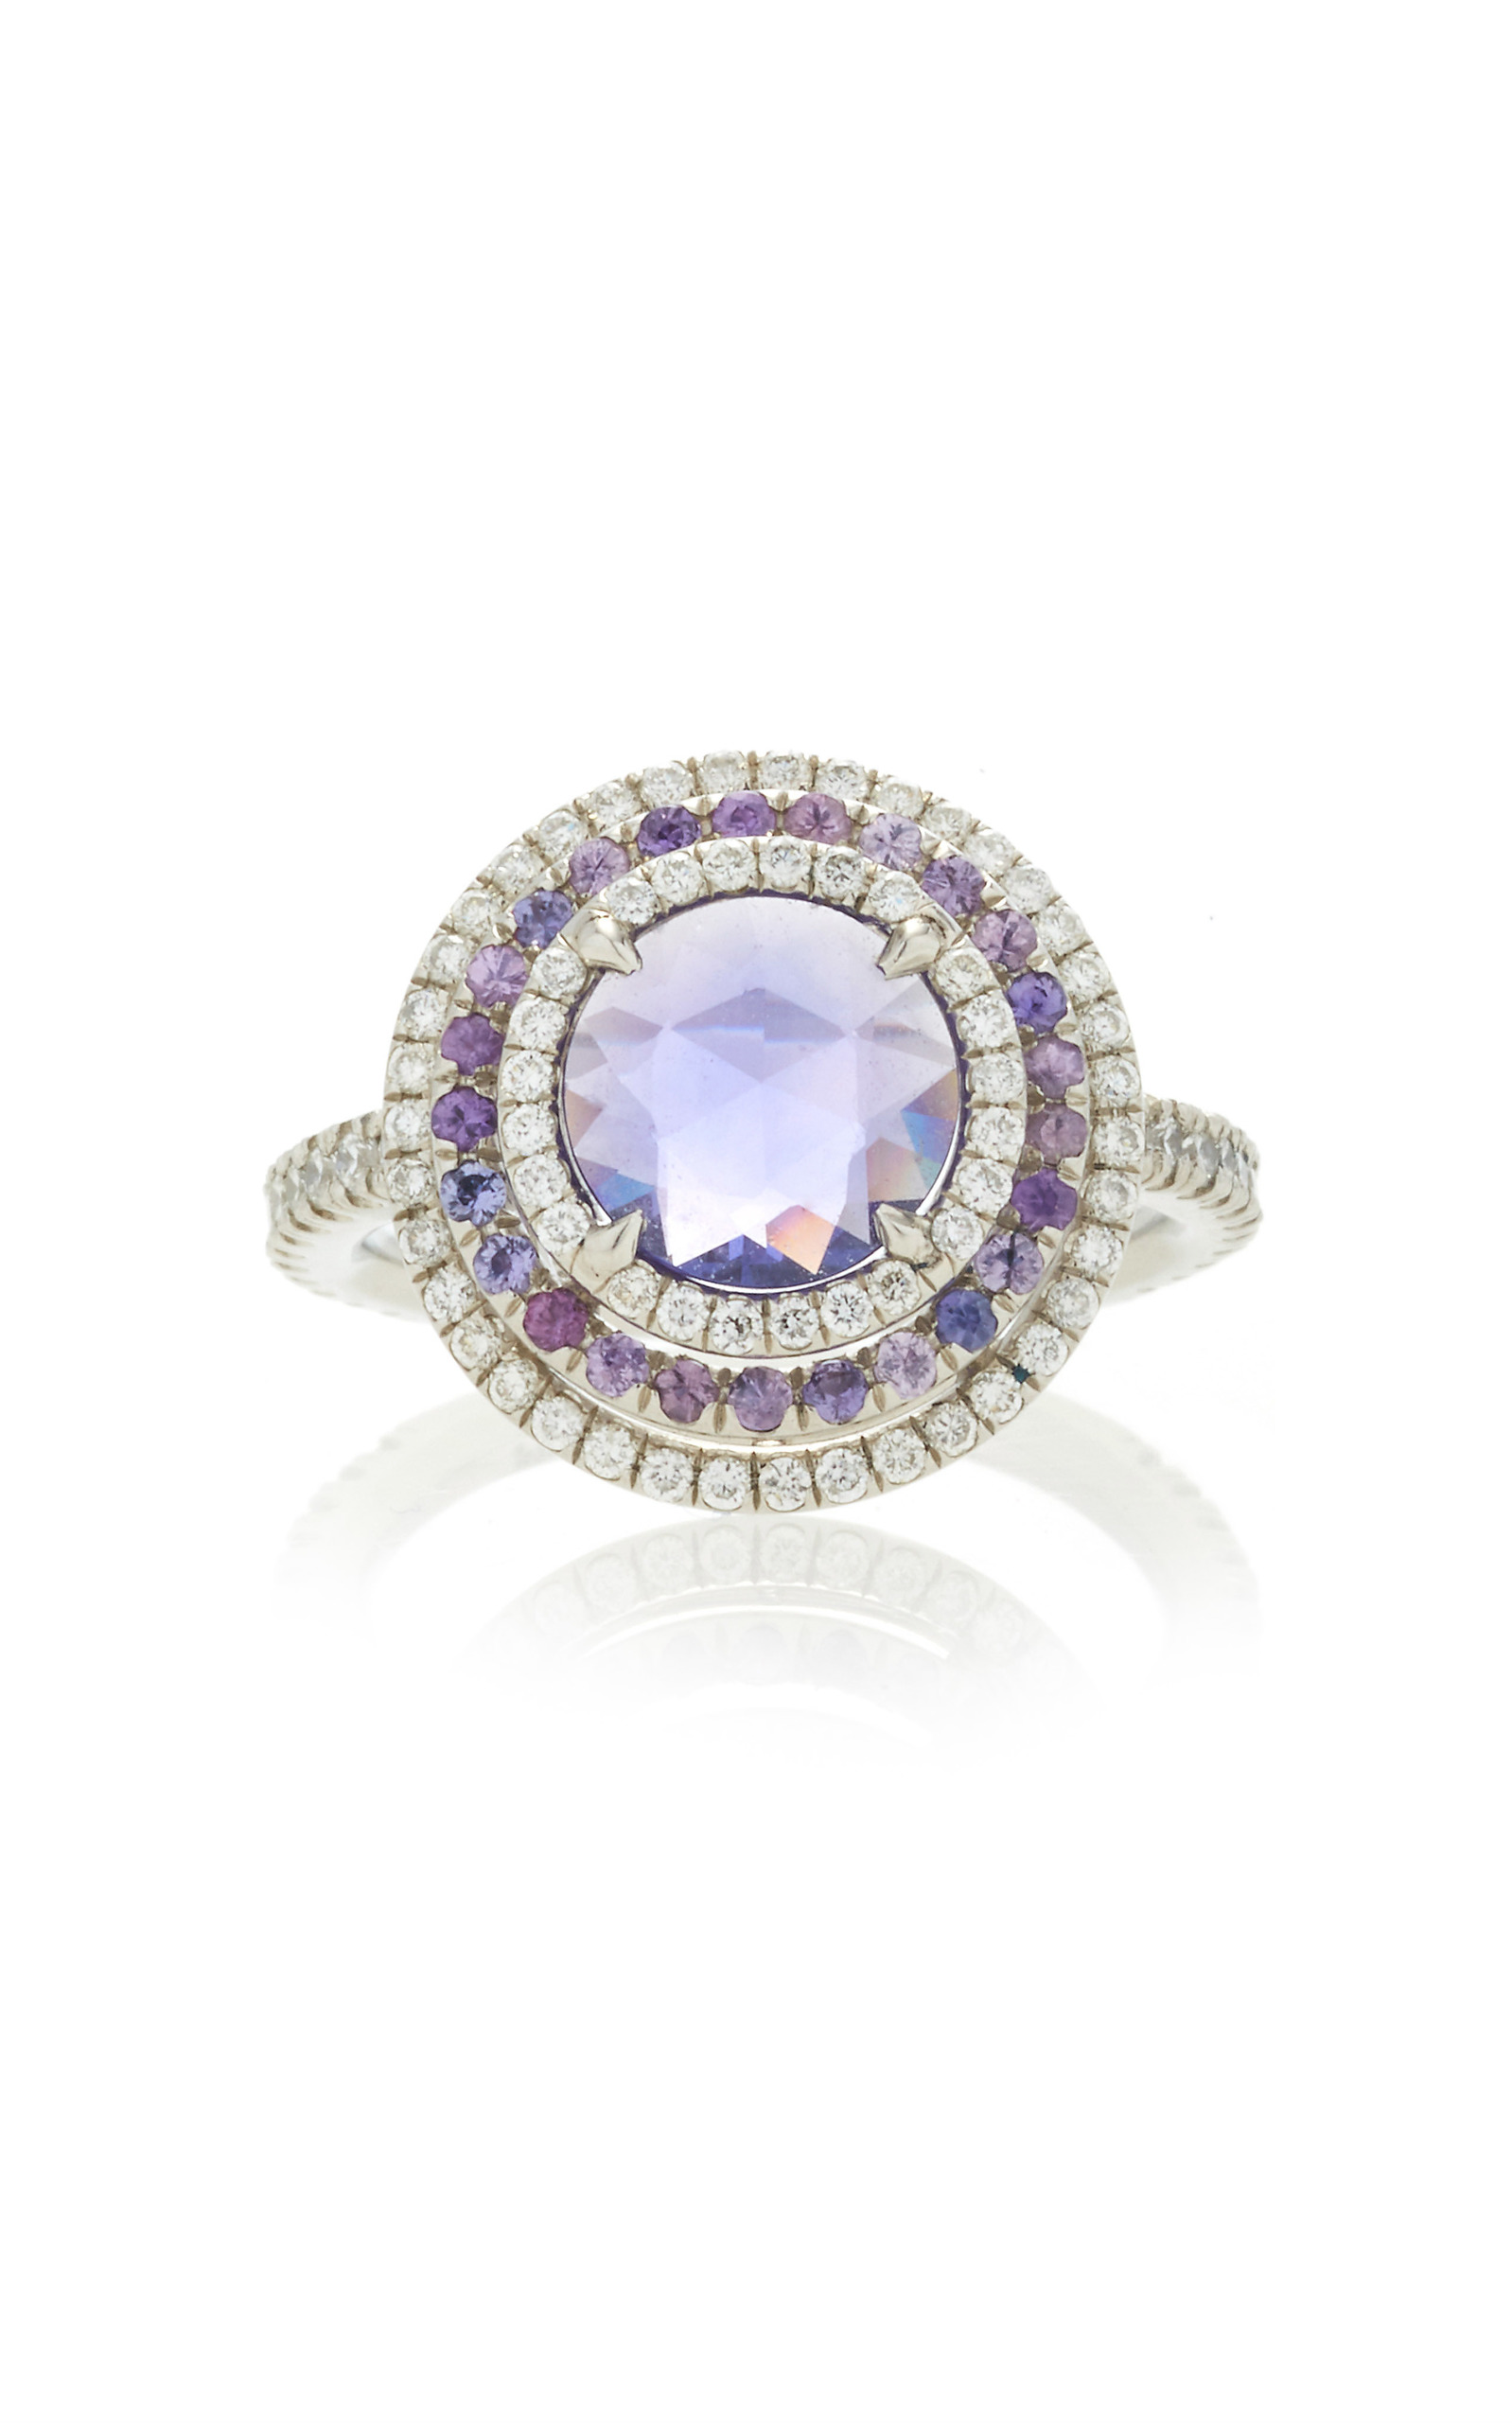 fong ring jessica butterfly lilac jf classic sapphire collection maiden product